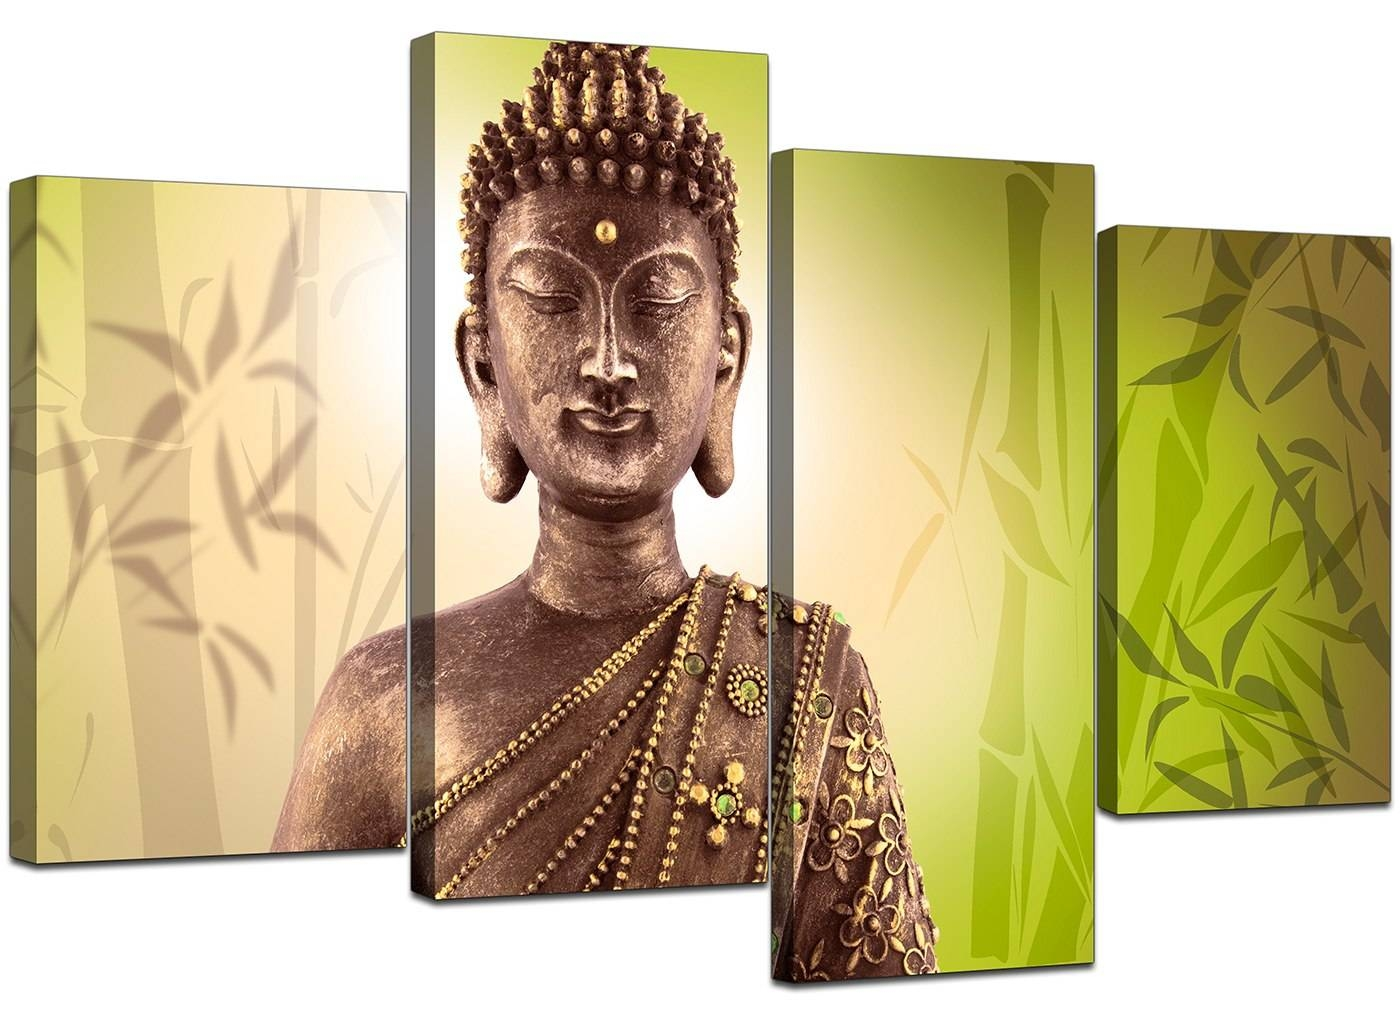 Canvas Art Of Buddha In Green For Your Living Room Regarding 2018 Large Buddha Wall Art (Gallery 11 of 15)